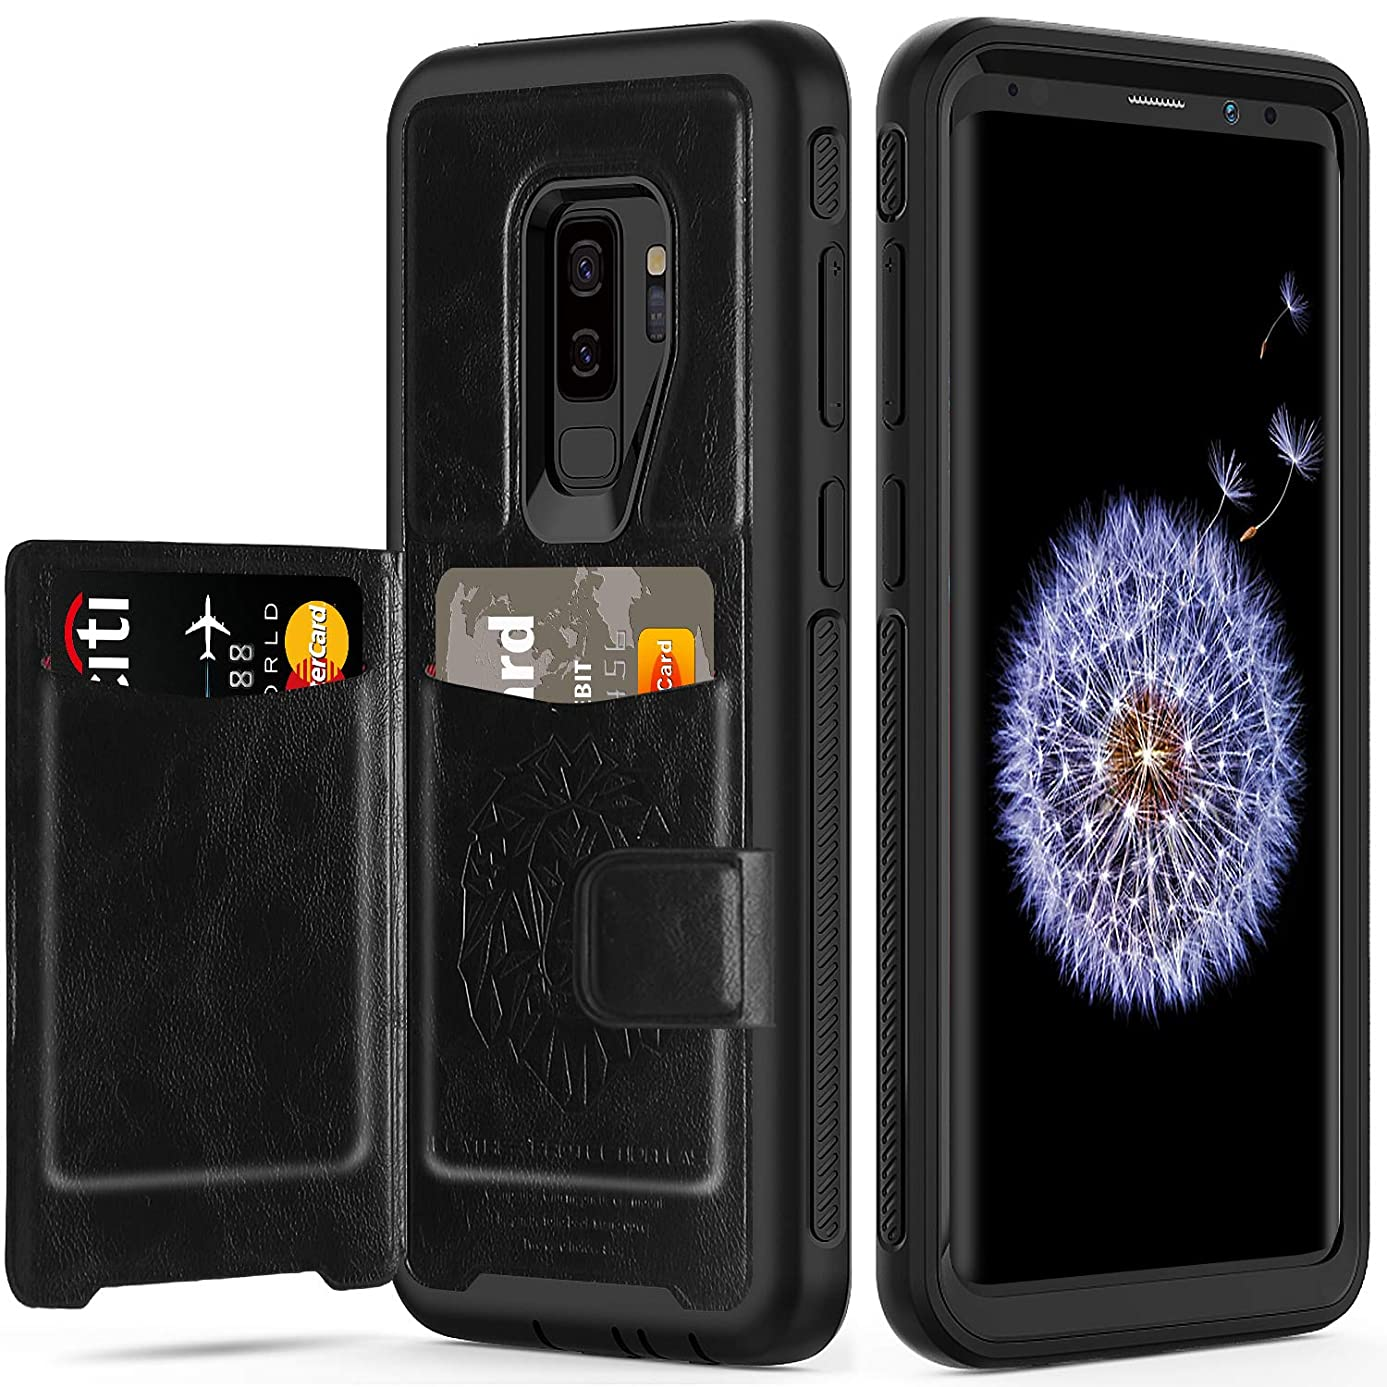 Galaxy S9 Plus Case with Card Holders,SXTech (Leather Cover Series) Slim Yet Protective with Kickstand.Built-In Magnetic Backing Wallet Case Fit for Samsung Galaxy S9 Plus 6.2 Inch (2018) -All Black